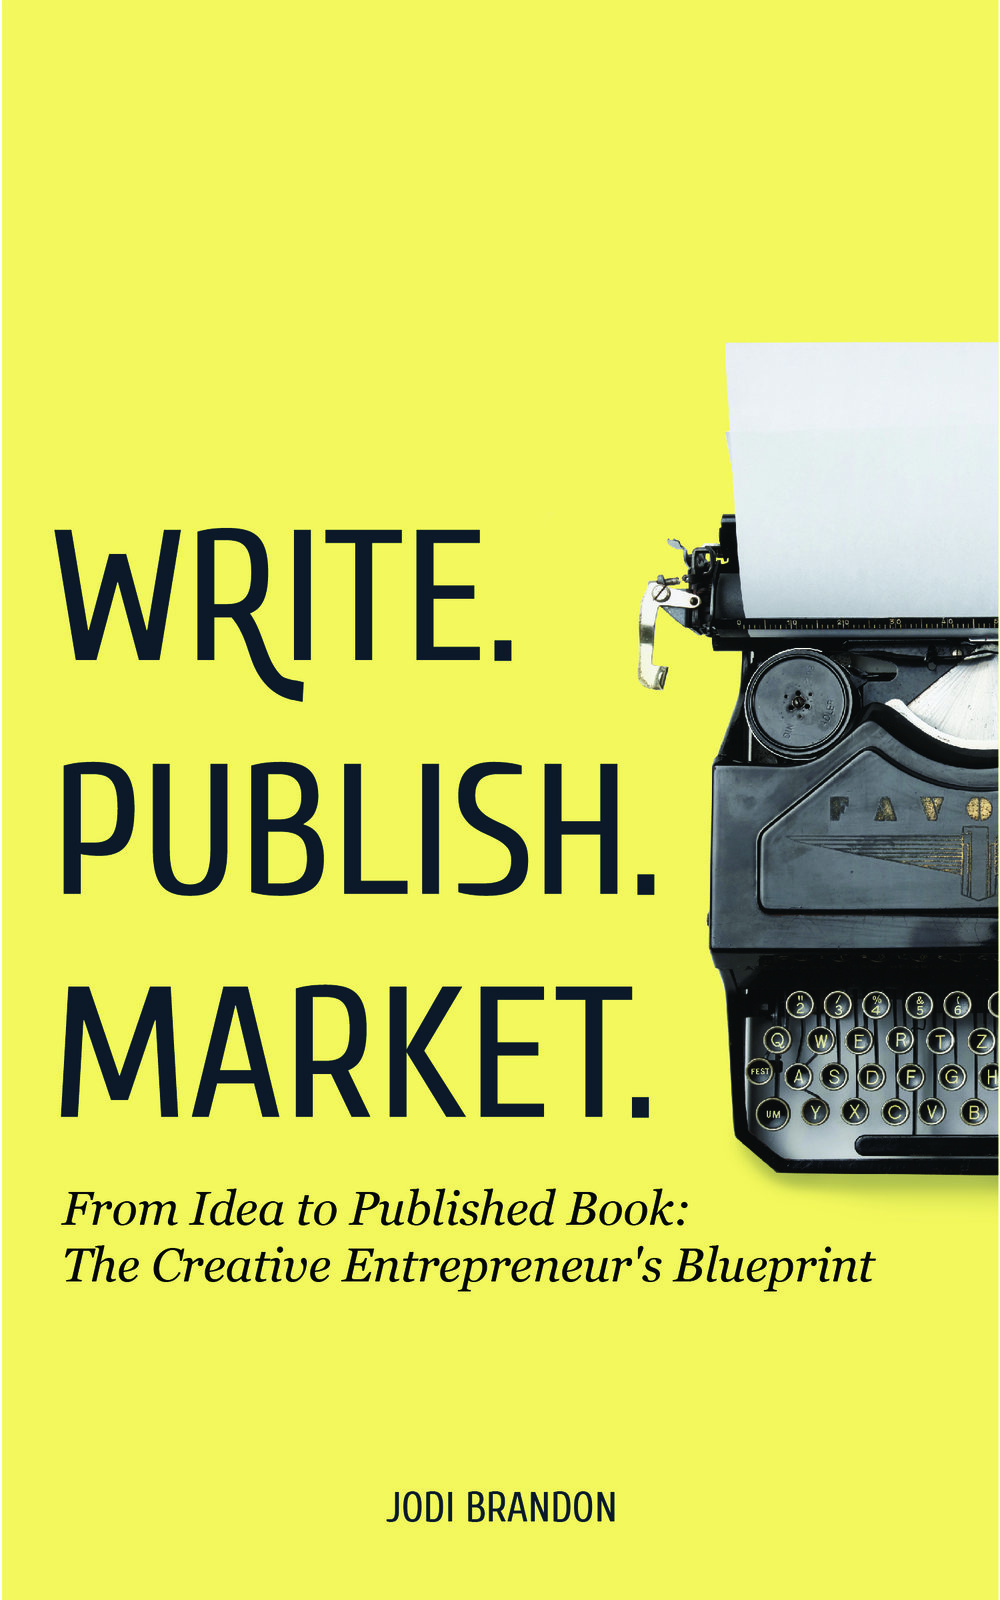 Write. Publish. Market Book